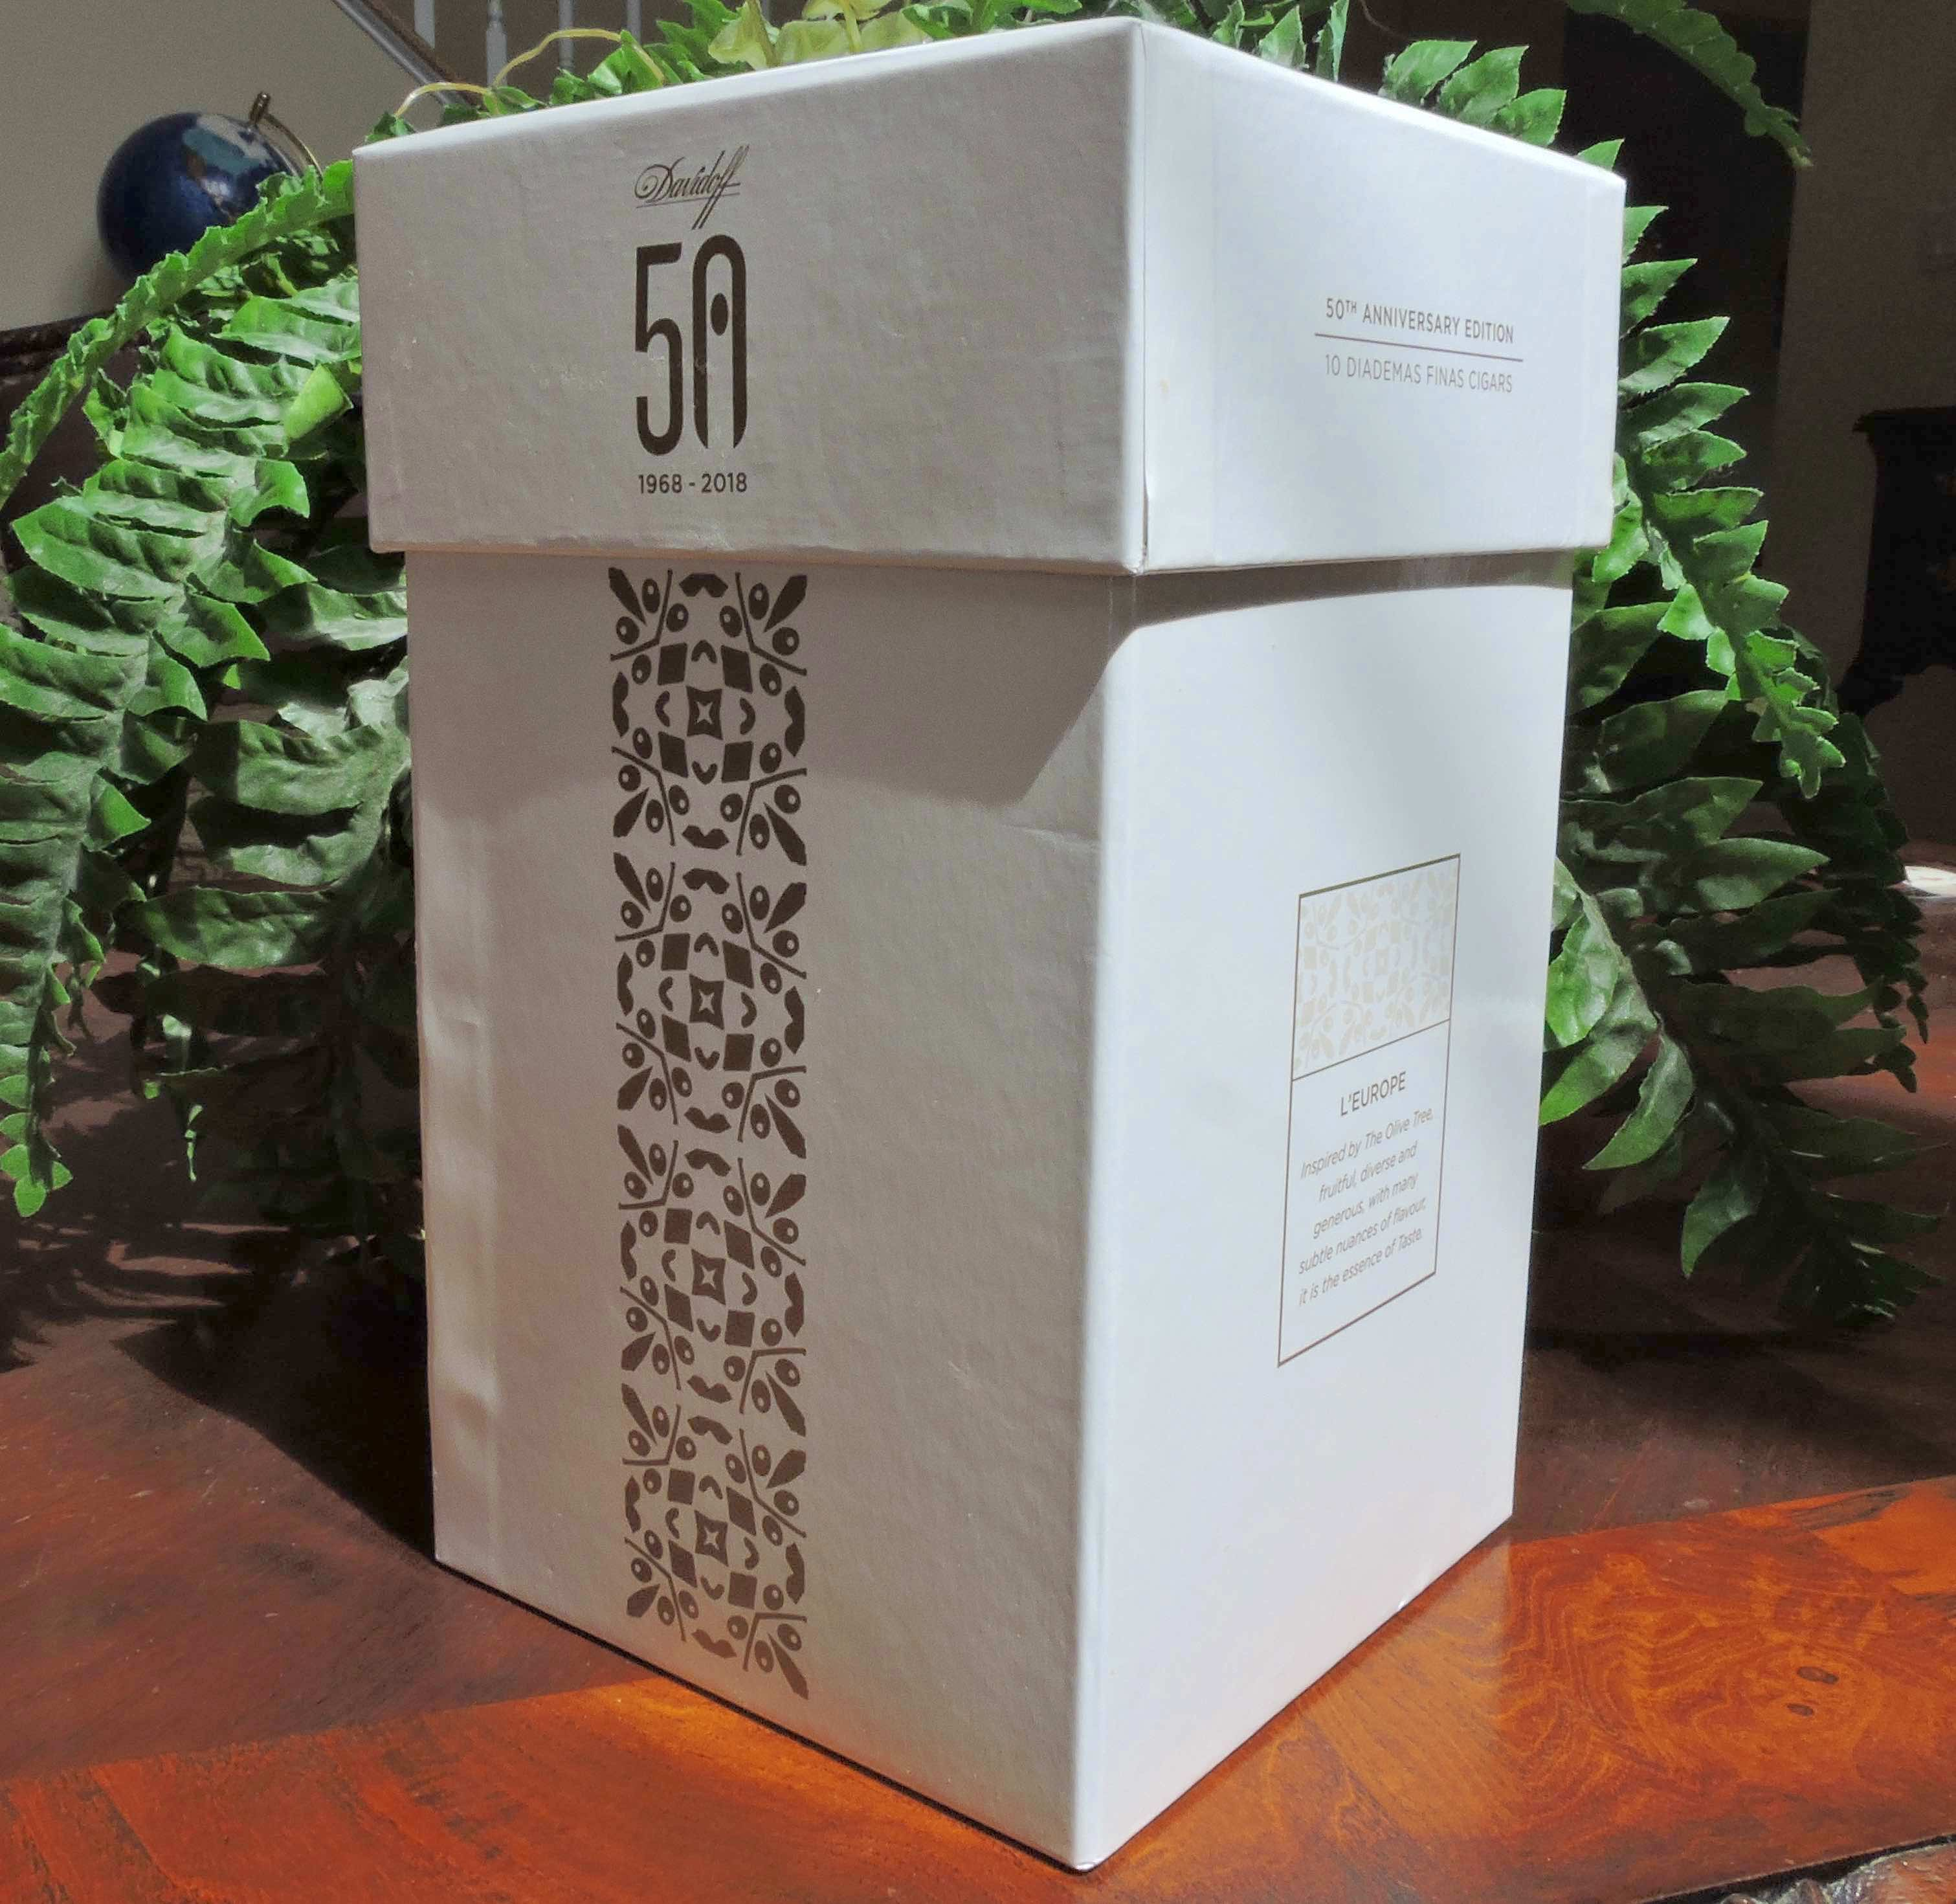 Davidoff 50 Years Limited Edition Diademas Finas Box